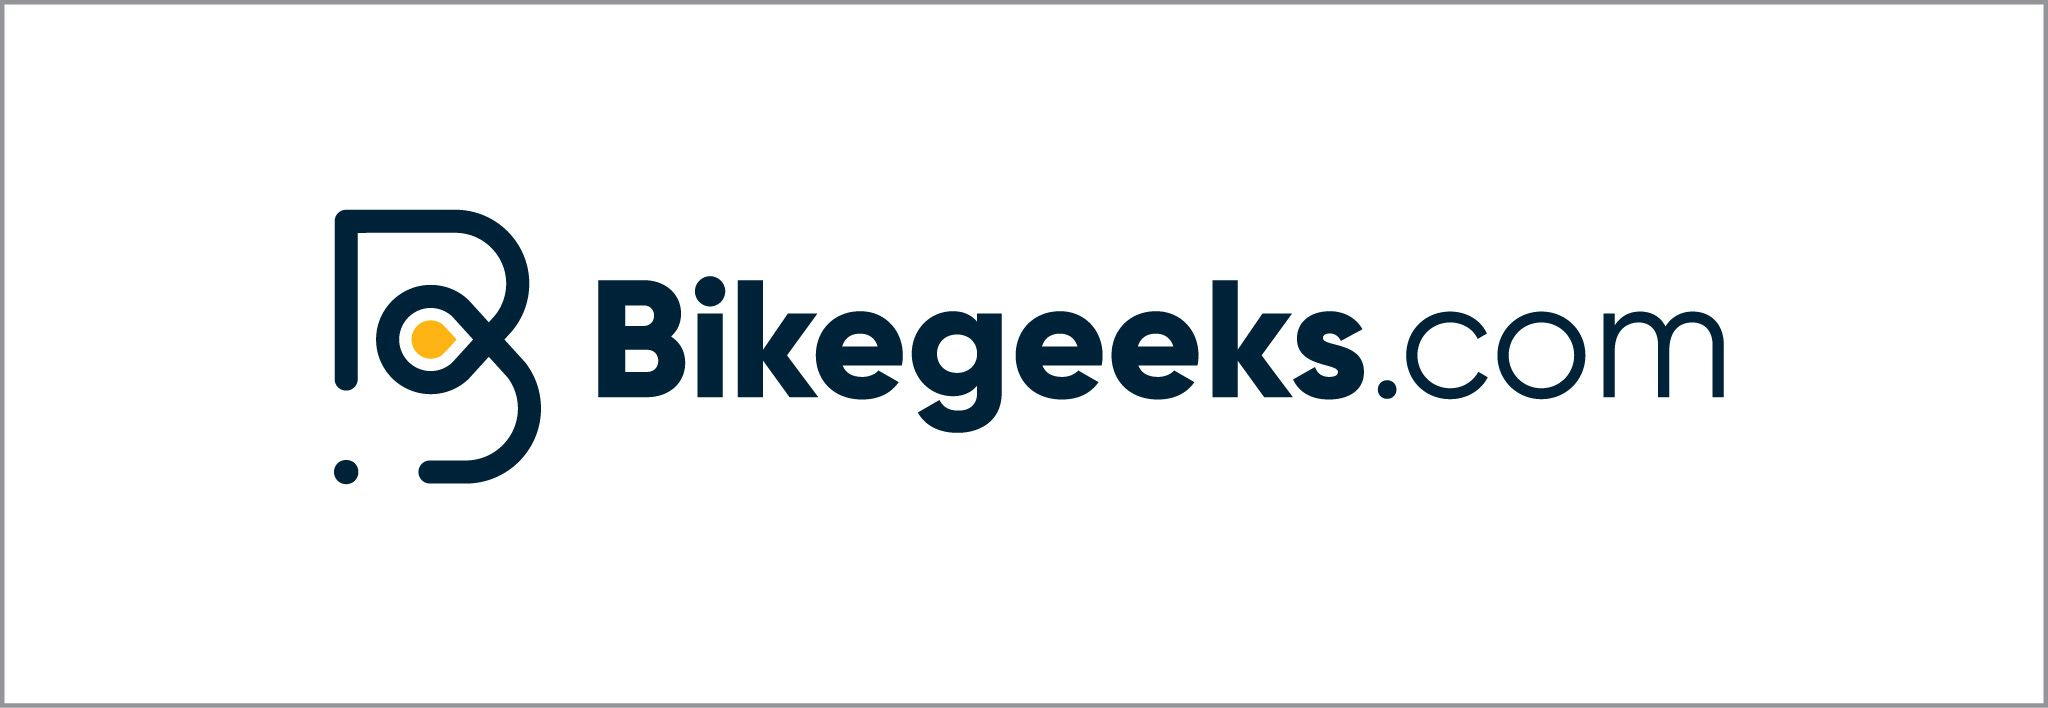 bike_geeks_logo_colour_guide.jpg